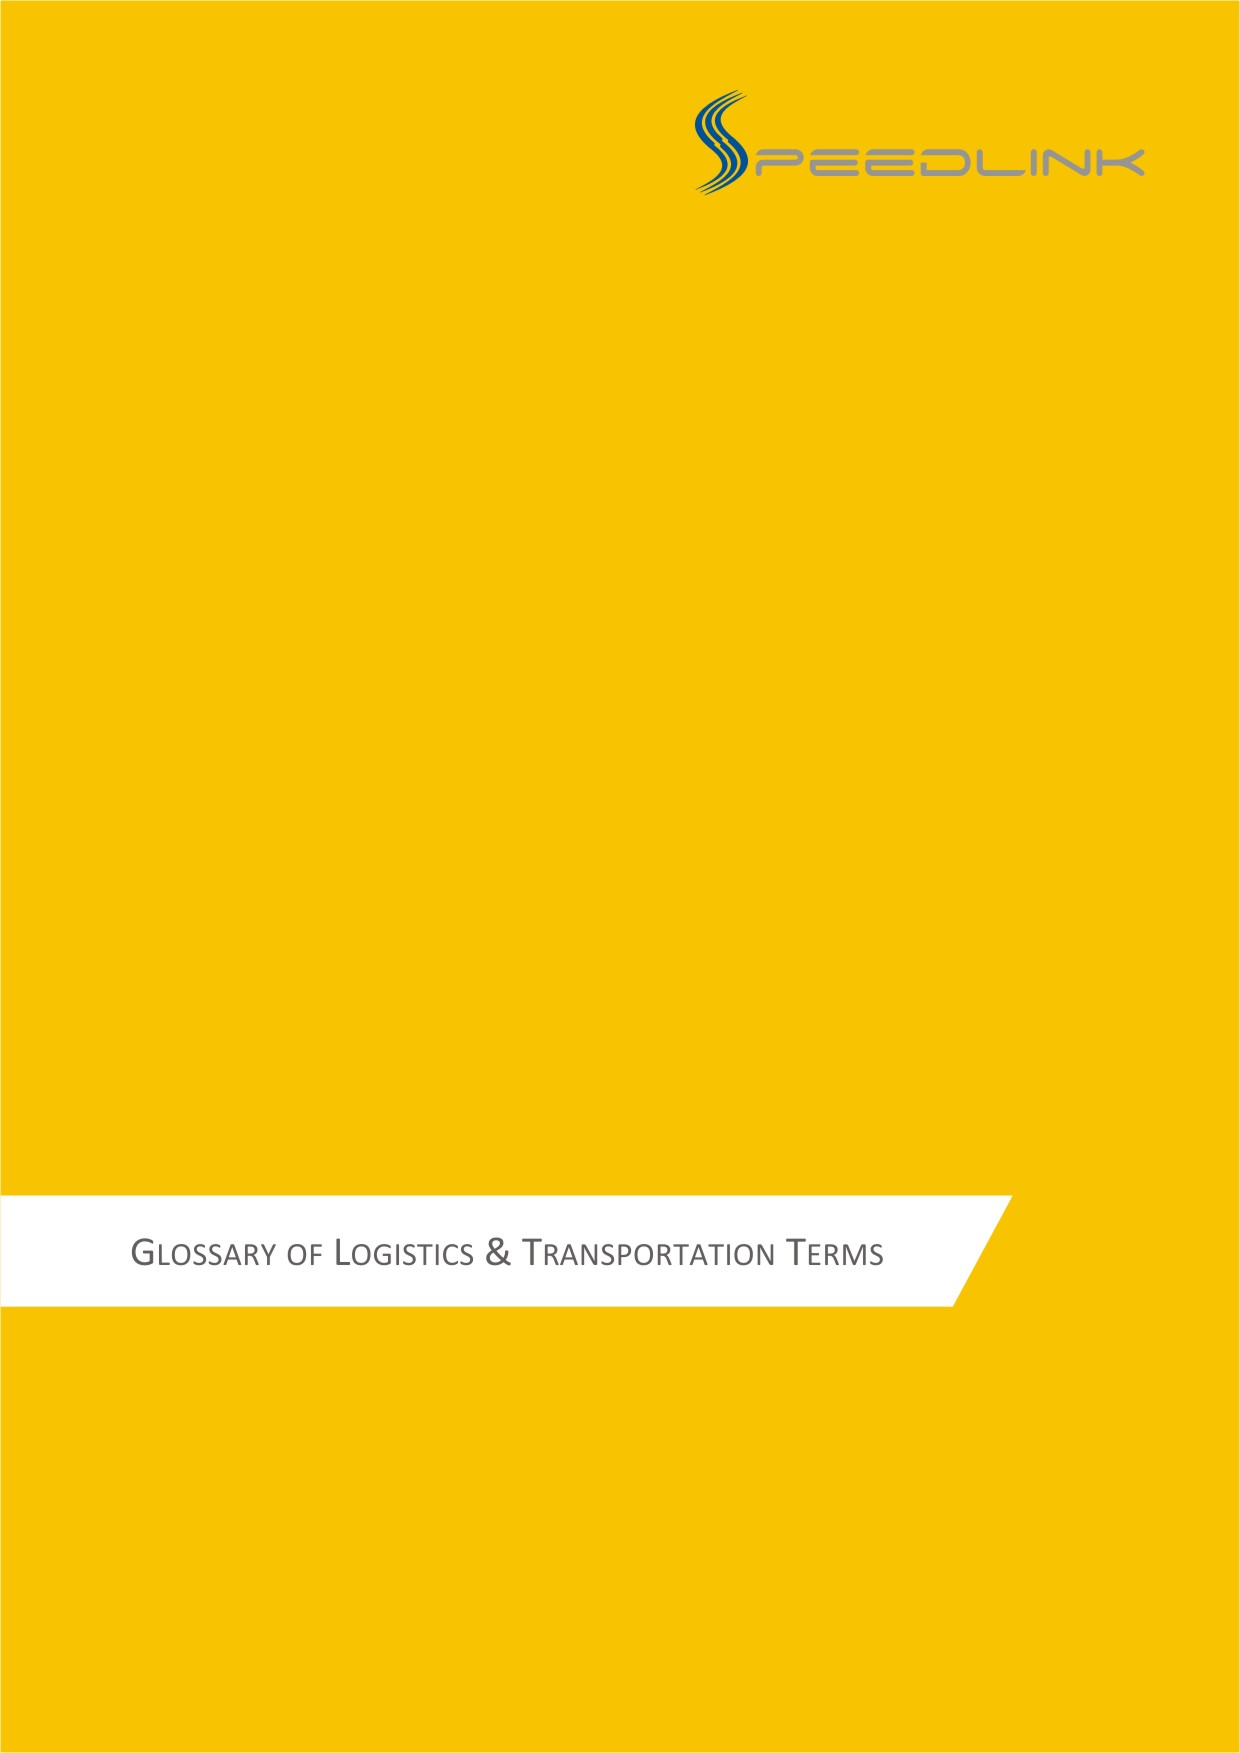 glossary-of-logistics-transportaion-terms